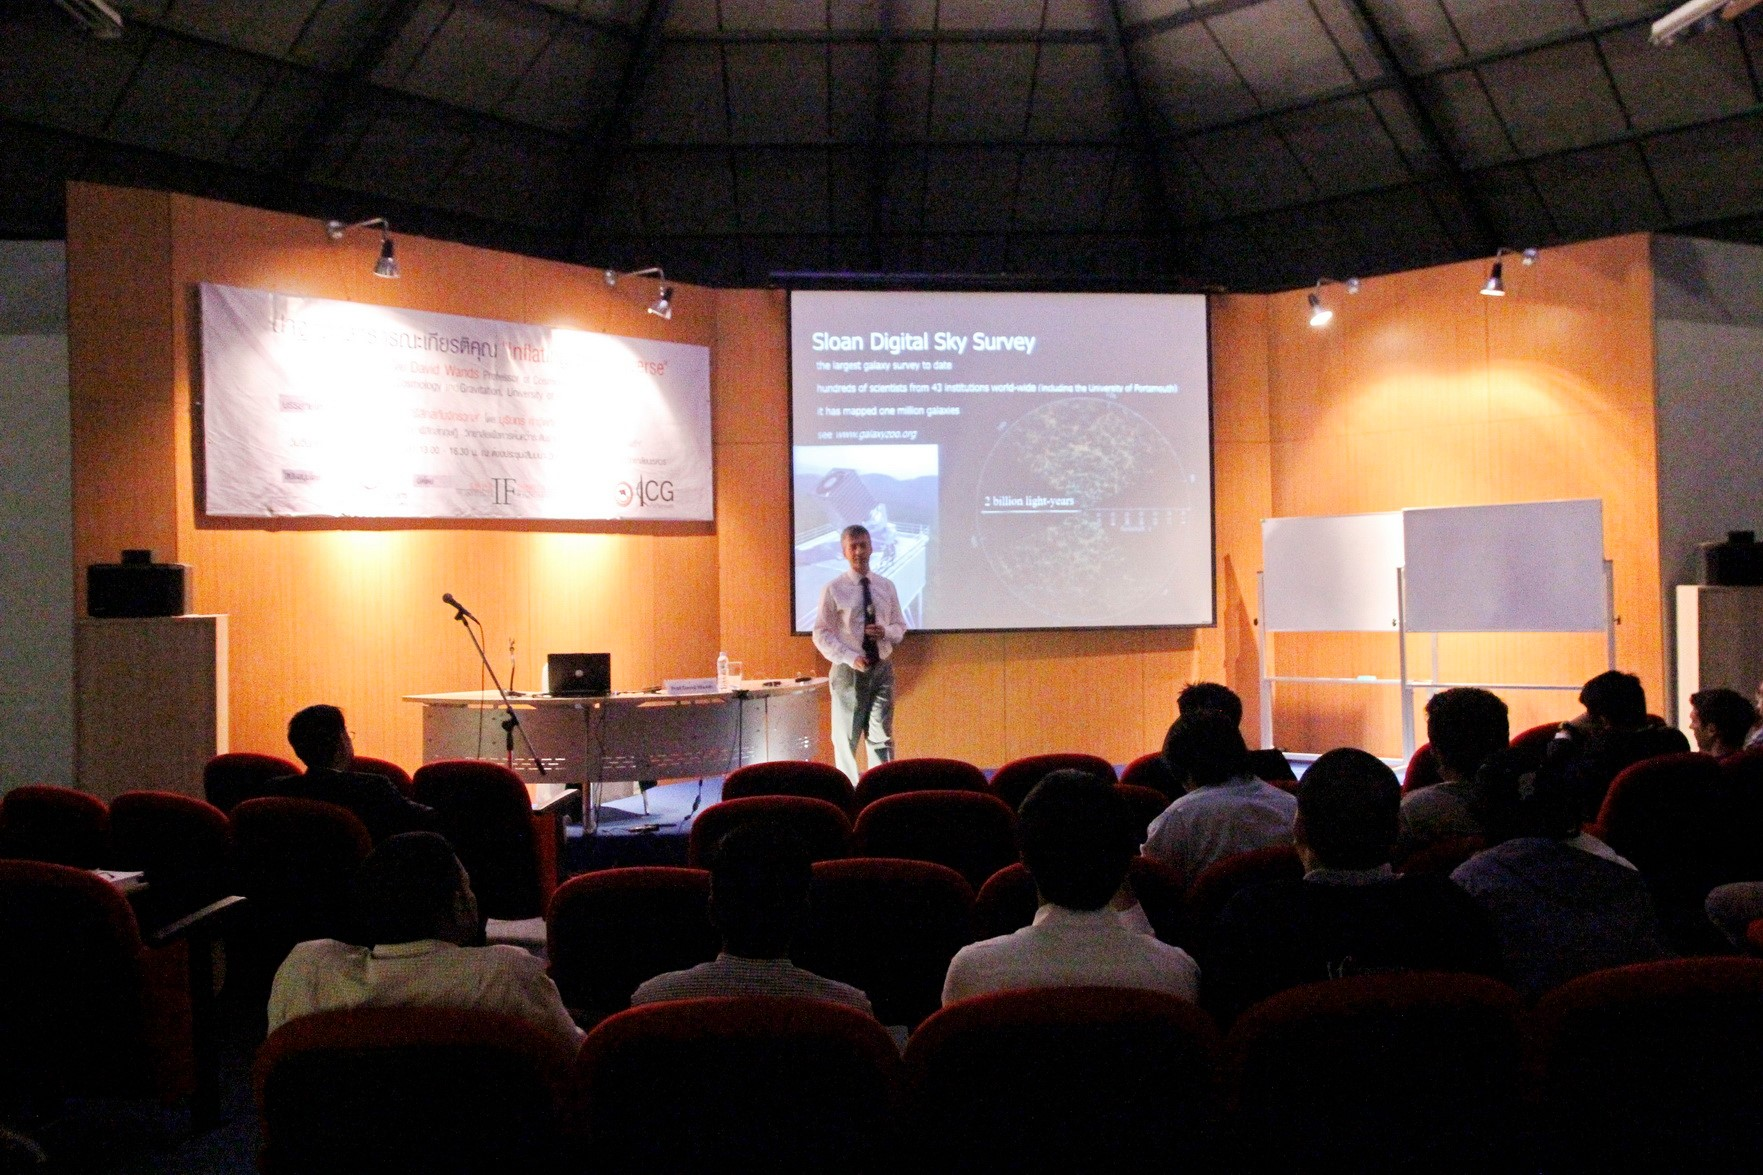 David Wands speaking at Naresuan University, Thailand